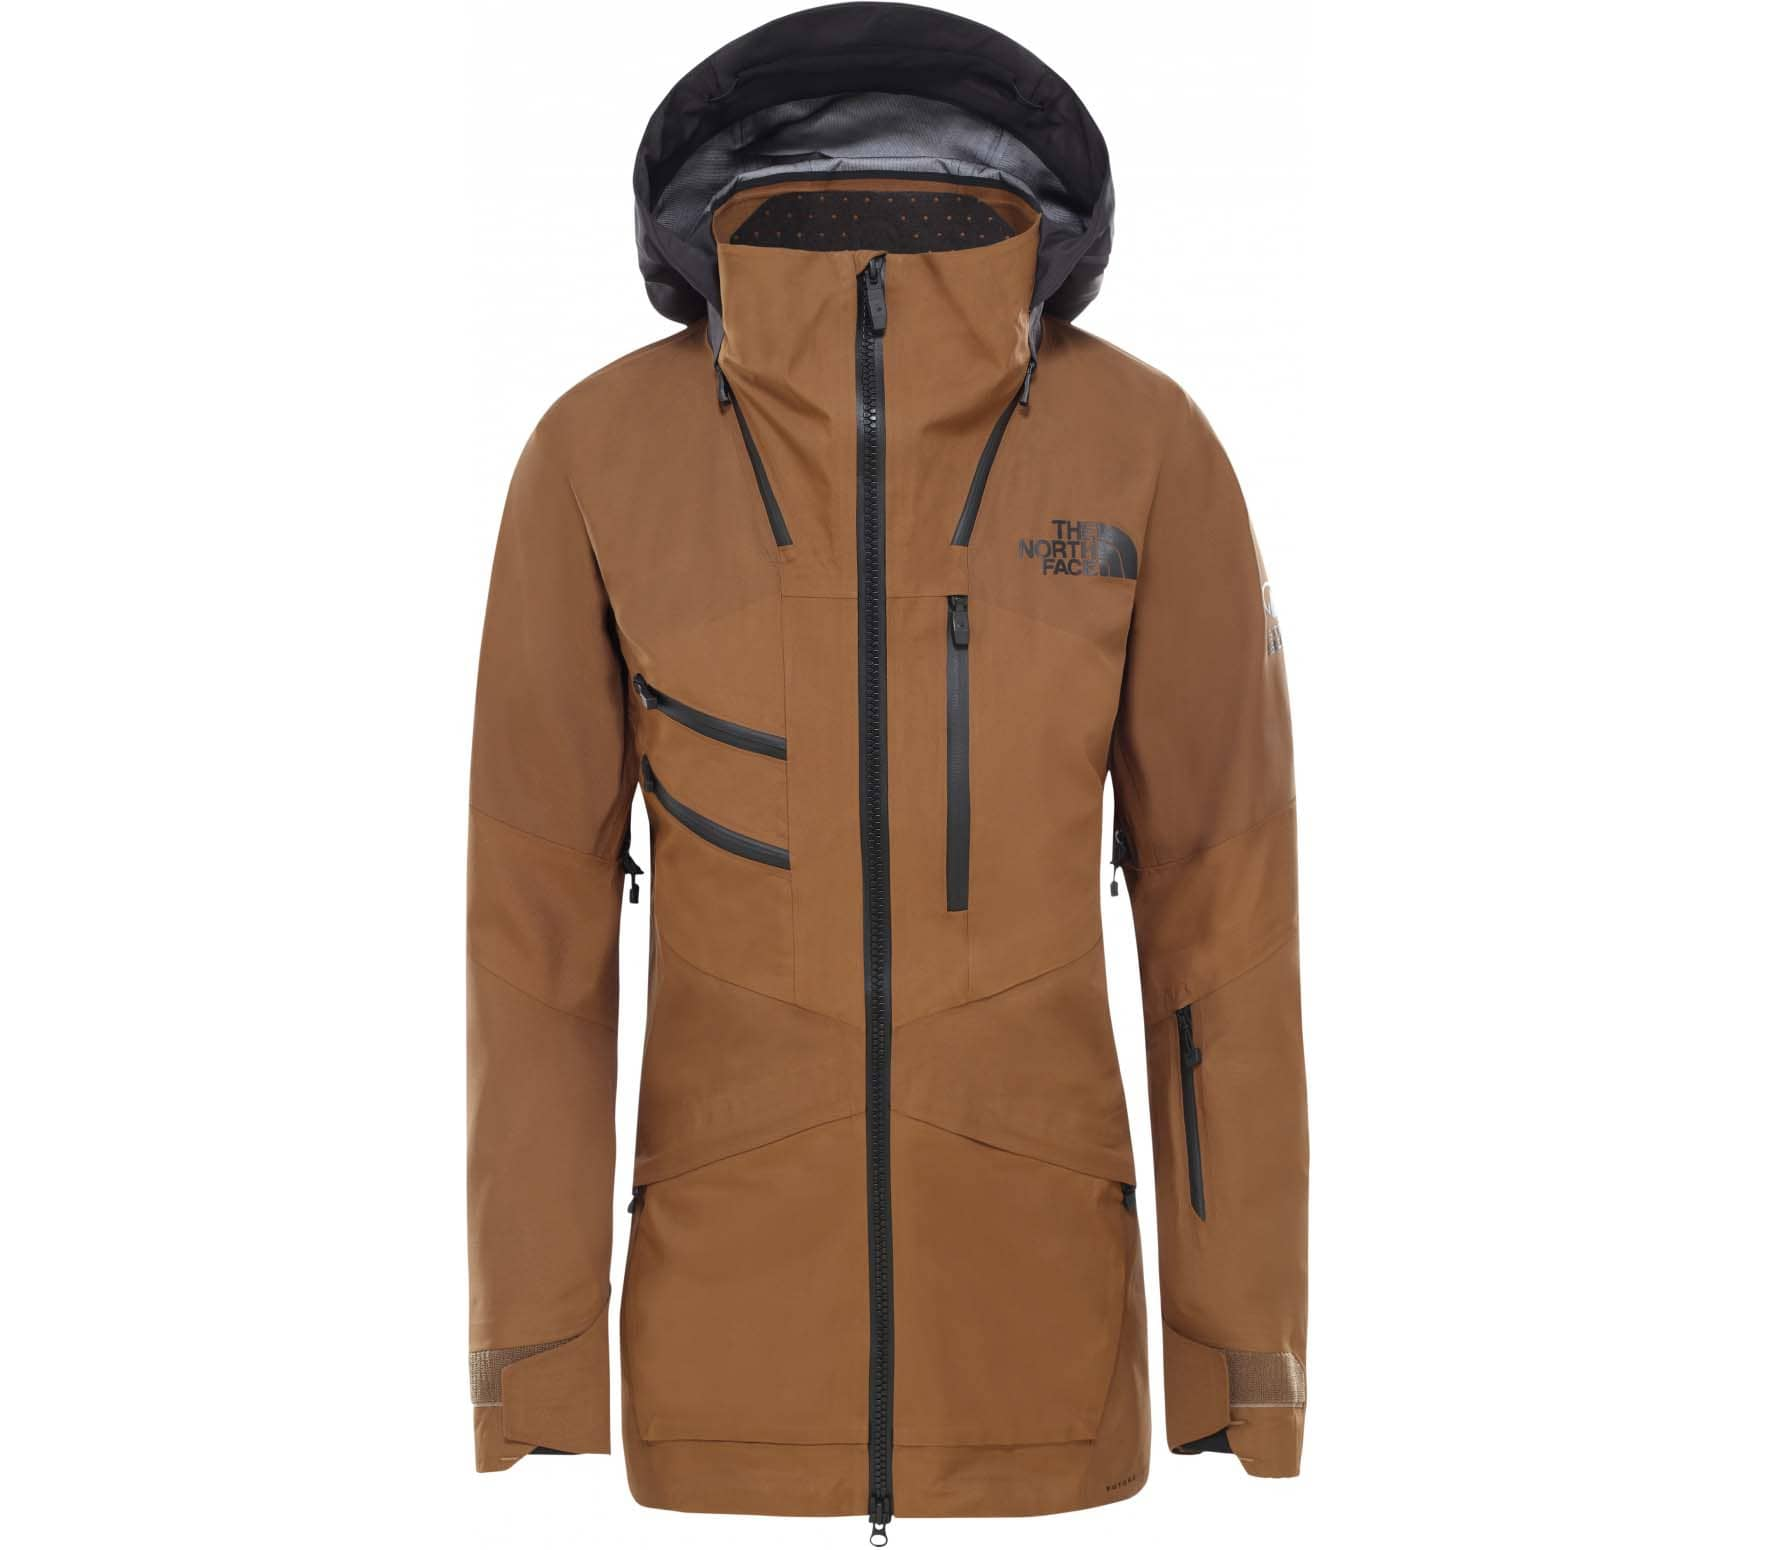 The North Face Brigandine Damen Skijacke (braun) 674,90 €